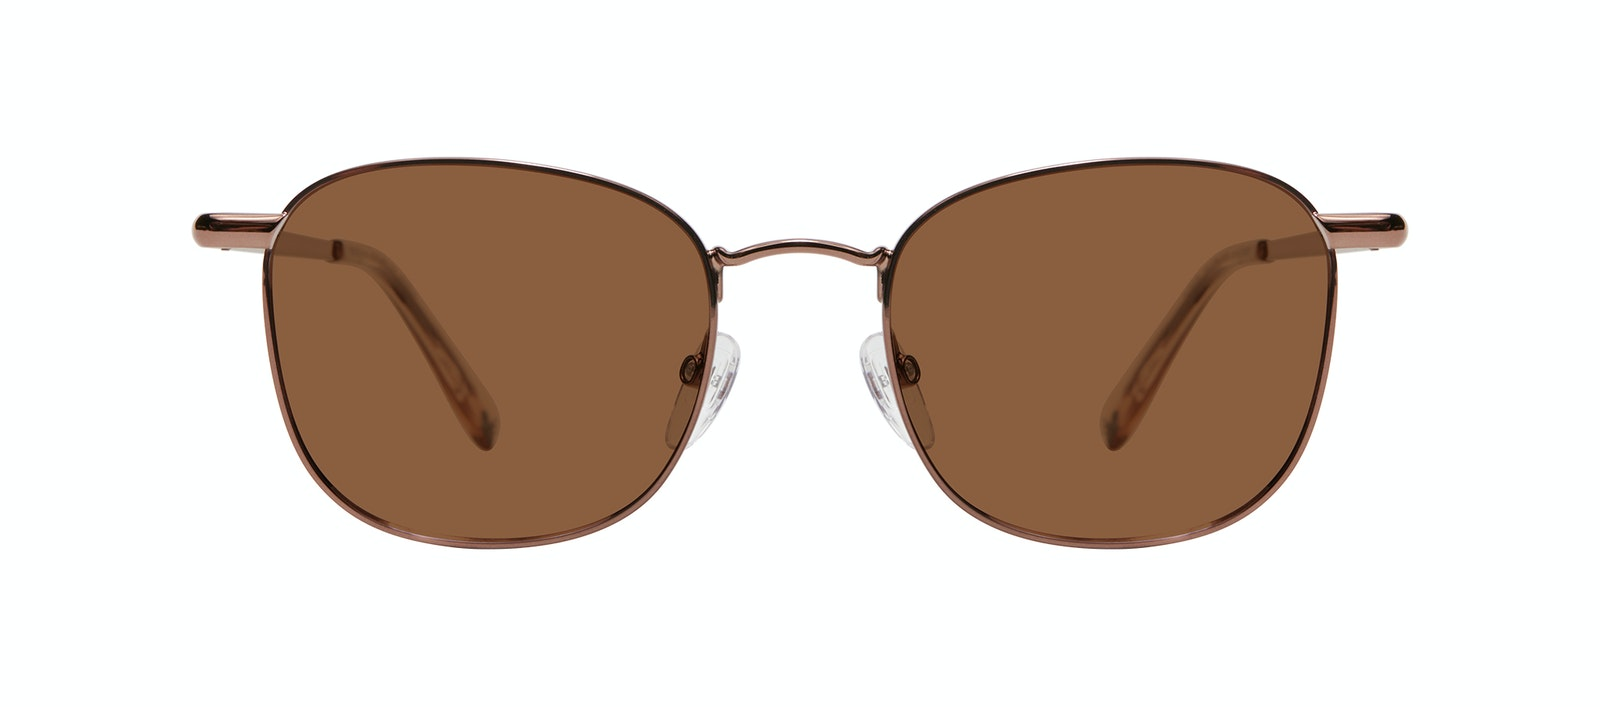 Affordable Fashion Glasses Square Sunglasses Men Apex S Copper Front